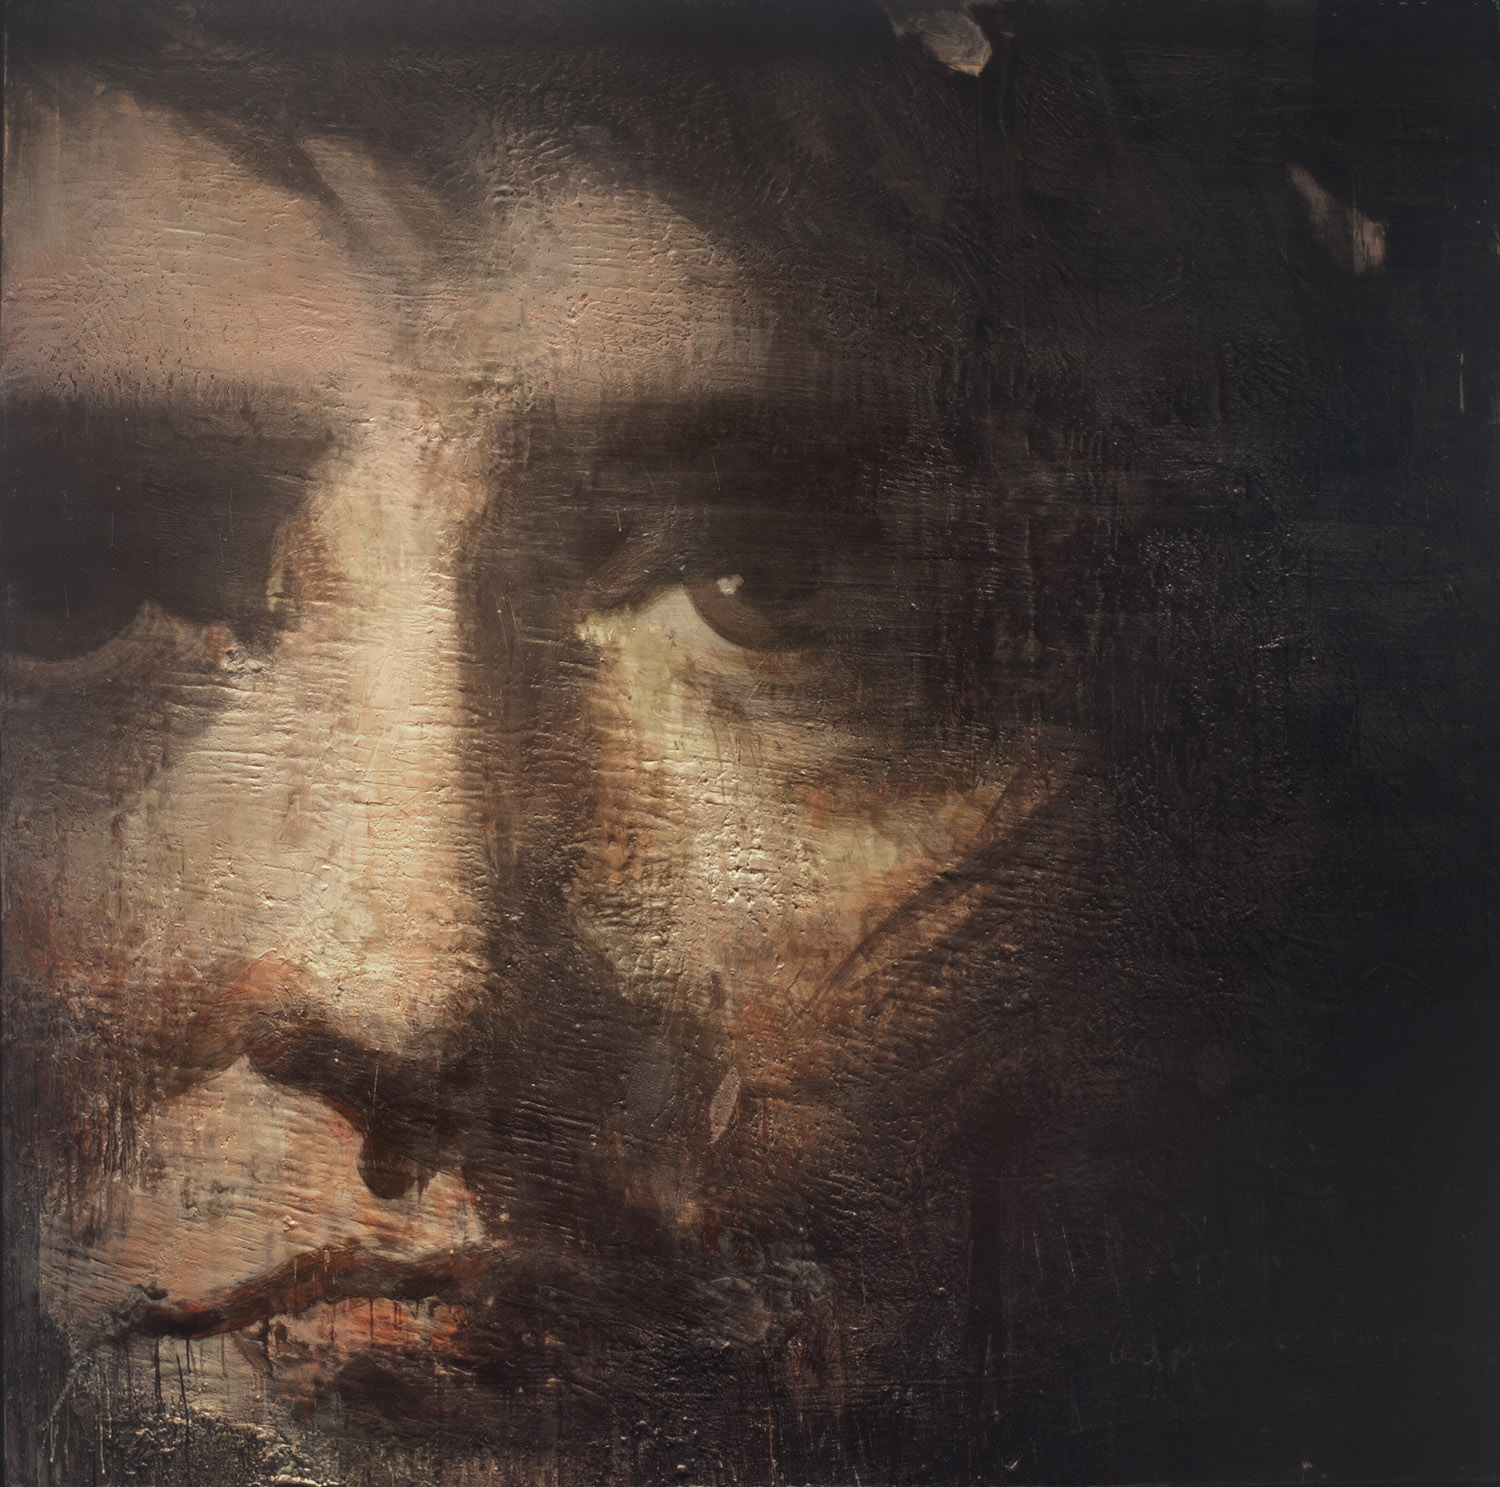 Napoleon , 1998–2011, 84 x 84 in, encaustic, oil pastel on canvas